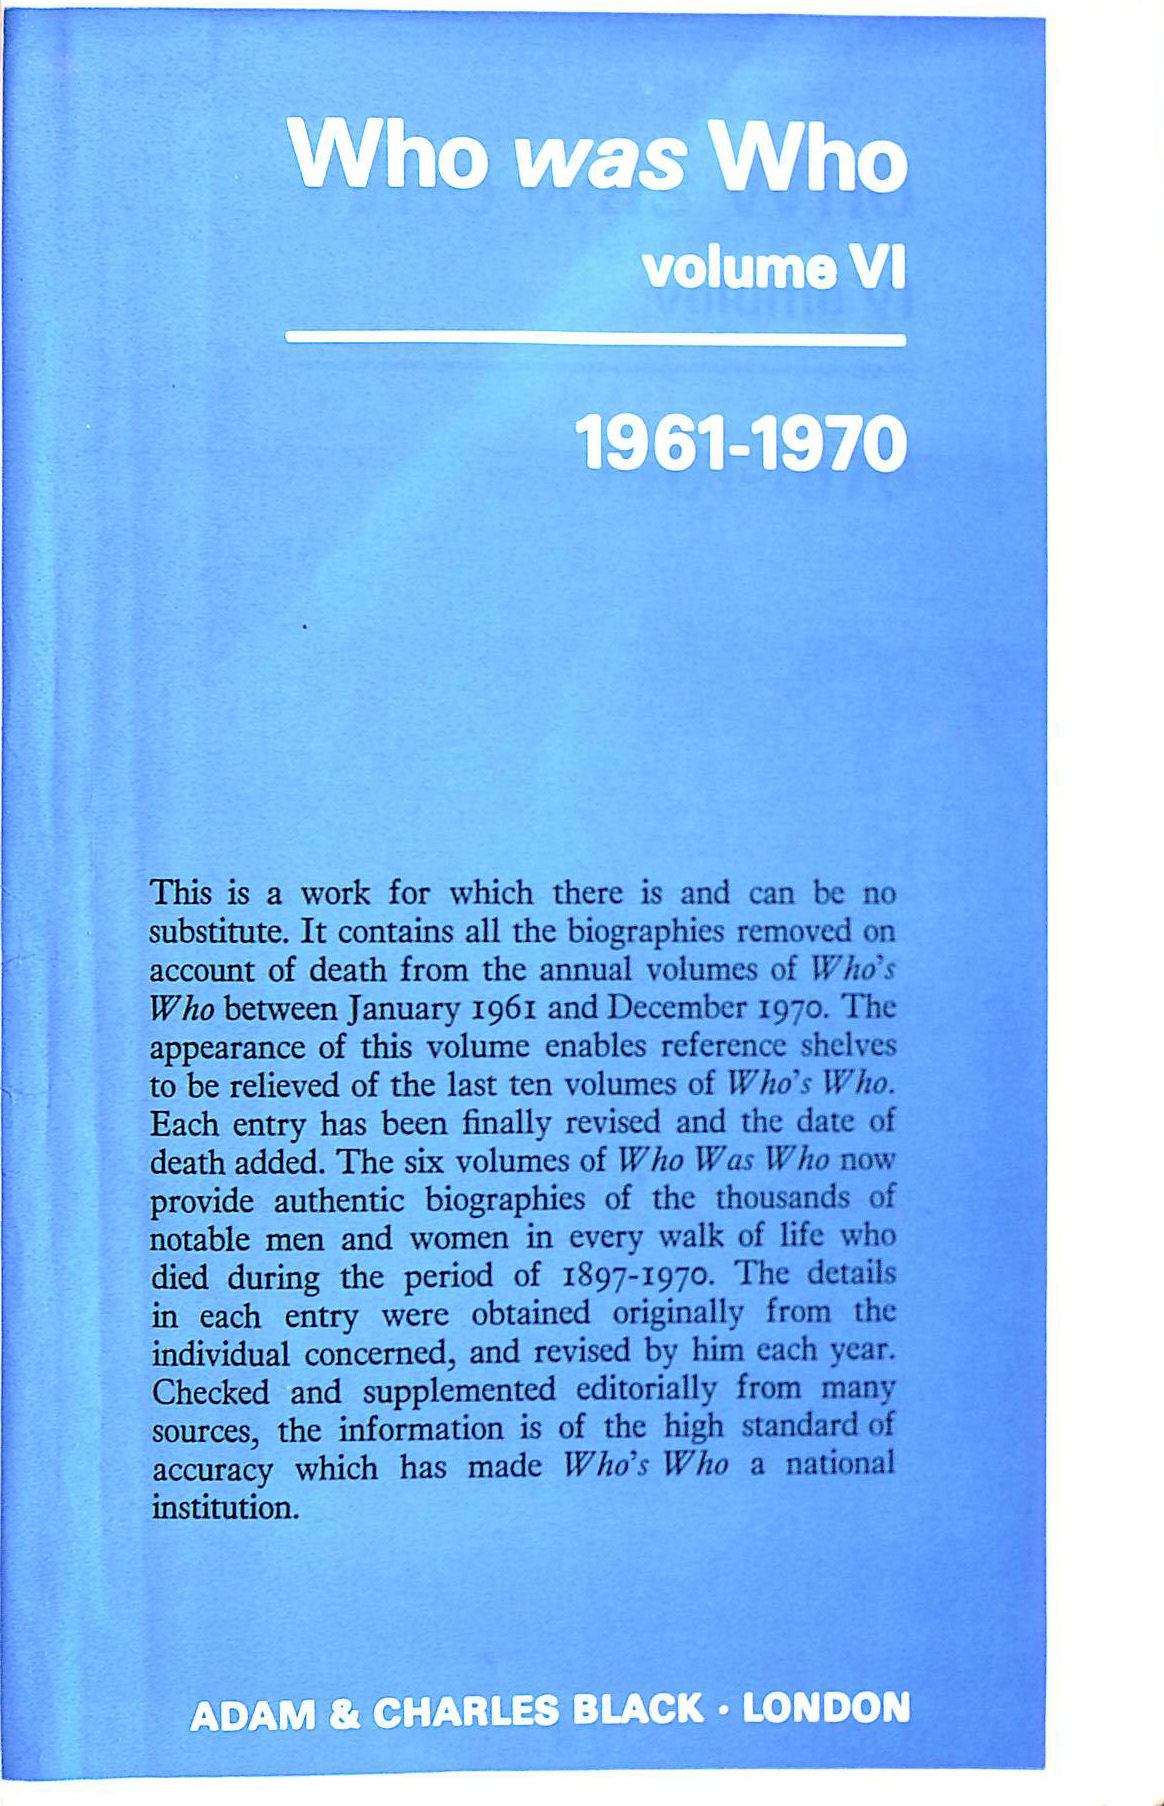 Image for Who Was Who, Vol. 6: A Companion to Who's Who containing the Biographies of Those Who Died During the Period 1961-1970: 1961-70 v. 6